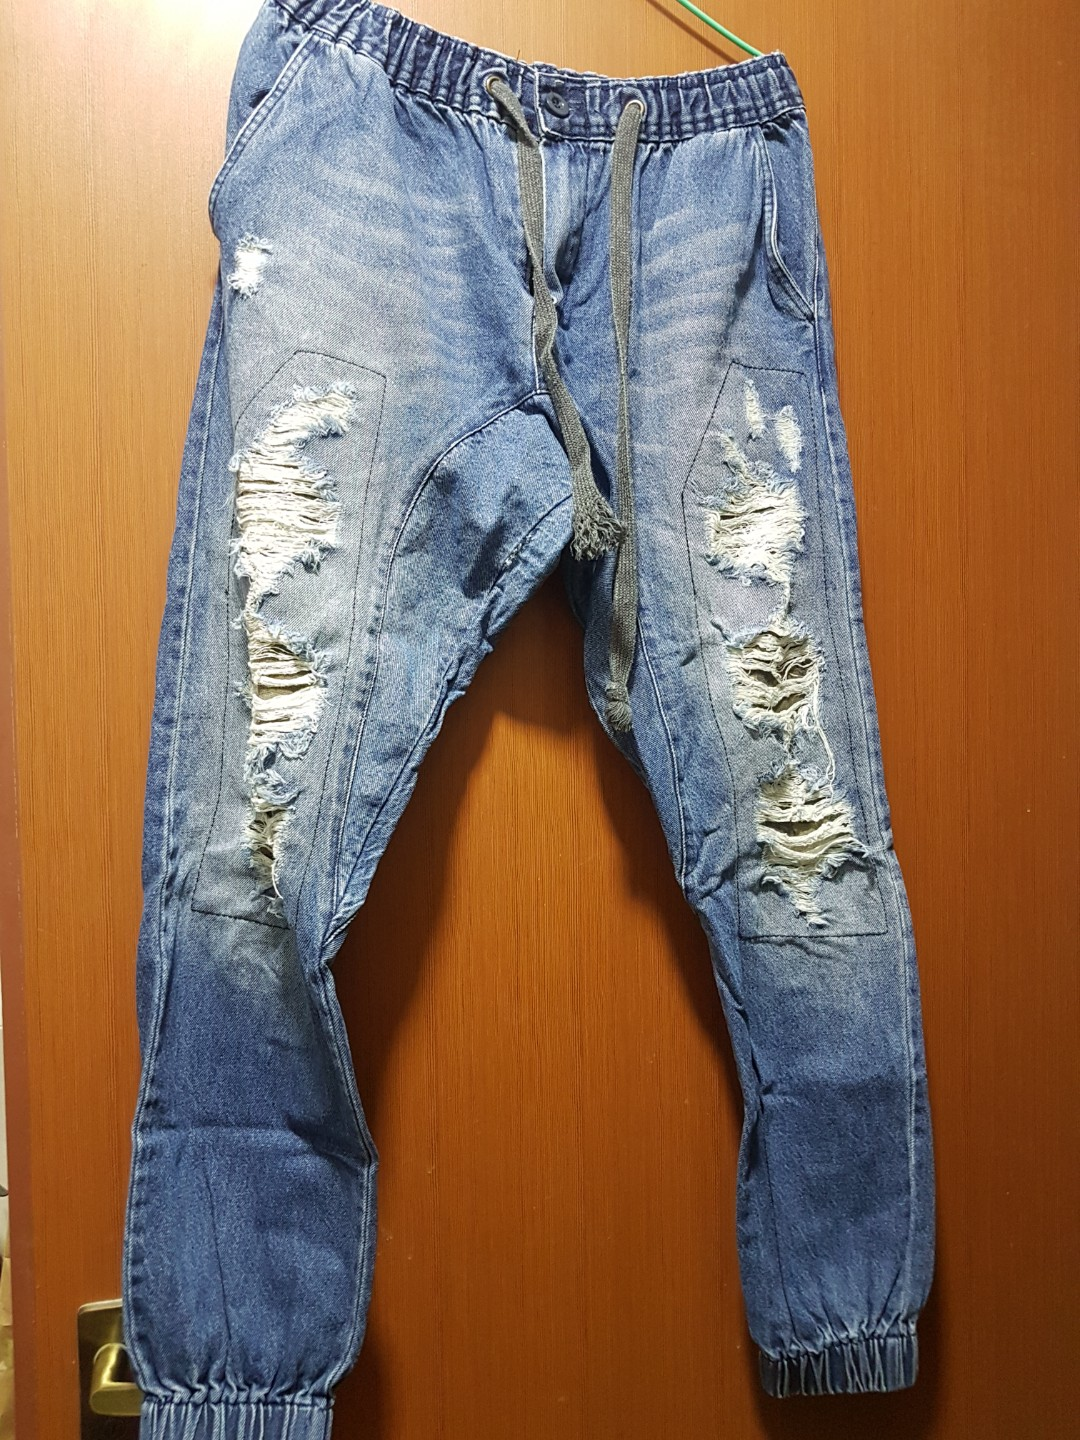 Denim Ripped Jogger Jeans Womens Fashion Clothes Pants Joger Riped Photo